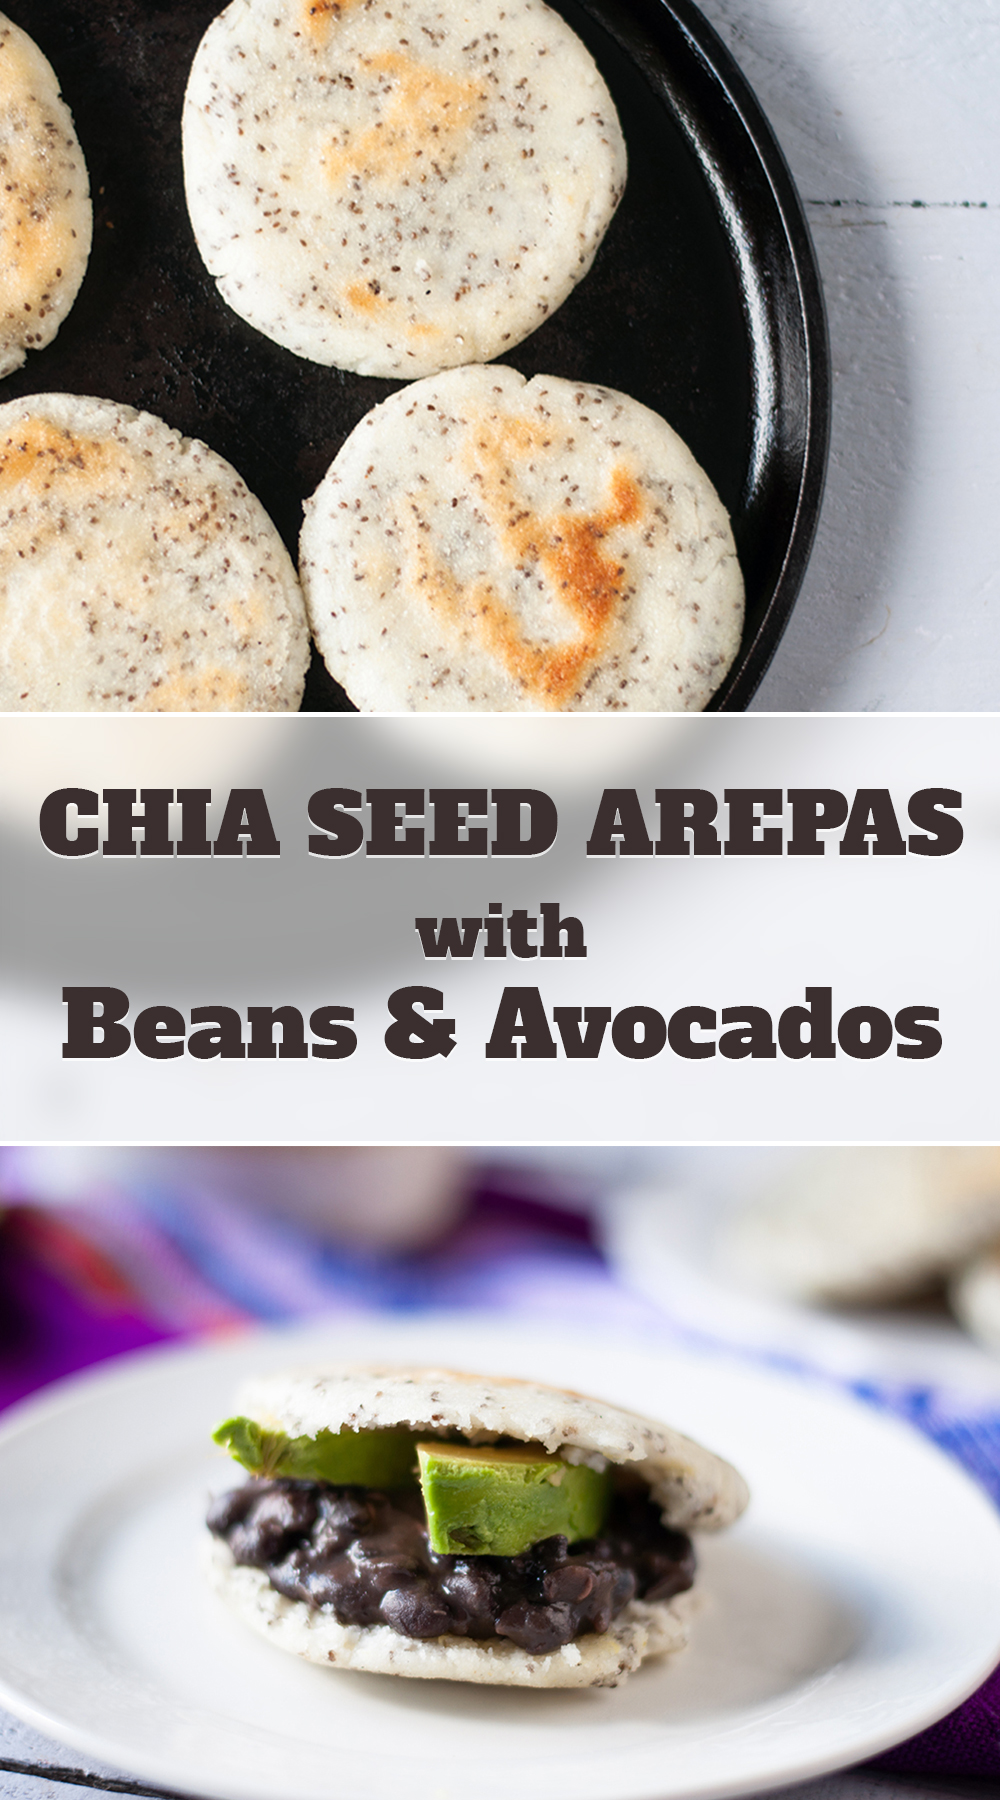 Vegan Chia Seed Arepas filled with easy Latin inspired refried beans and avocado slices. A protein-packed plant-based meal that's perfect for brunch or dinner! #vegan #entree #Venezuelan